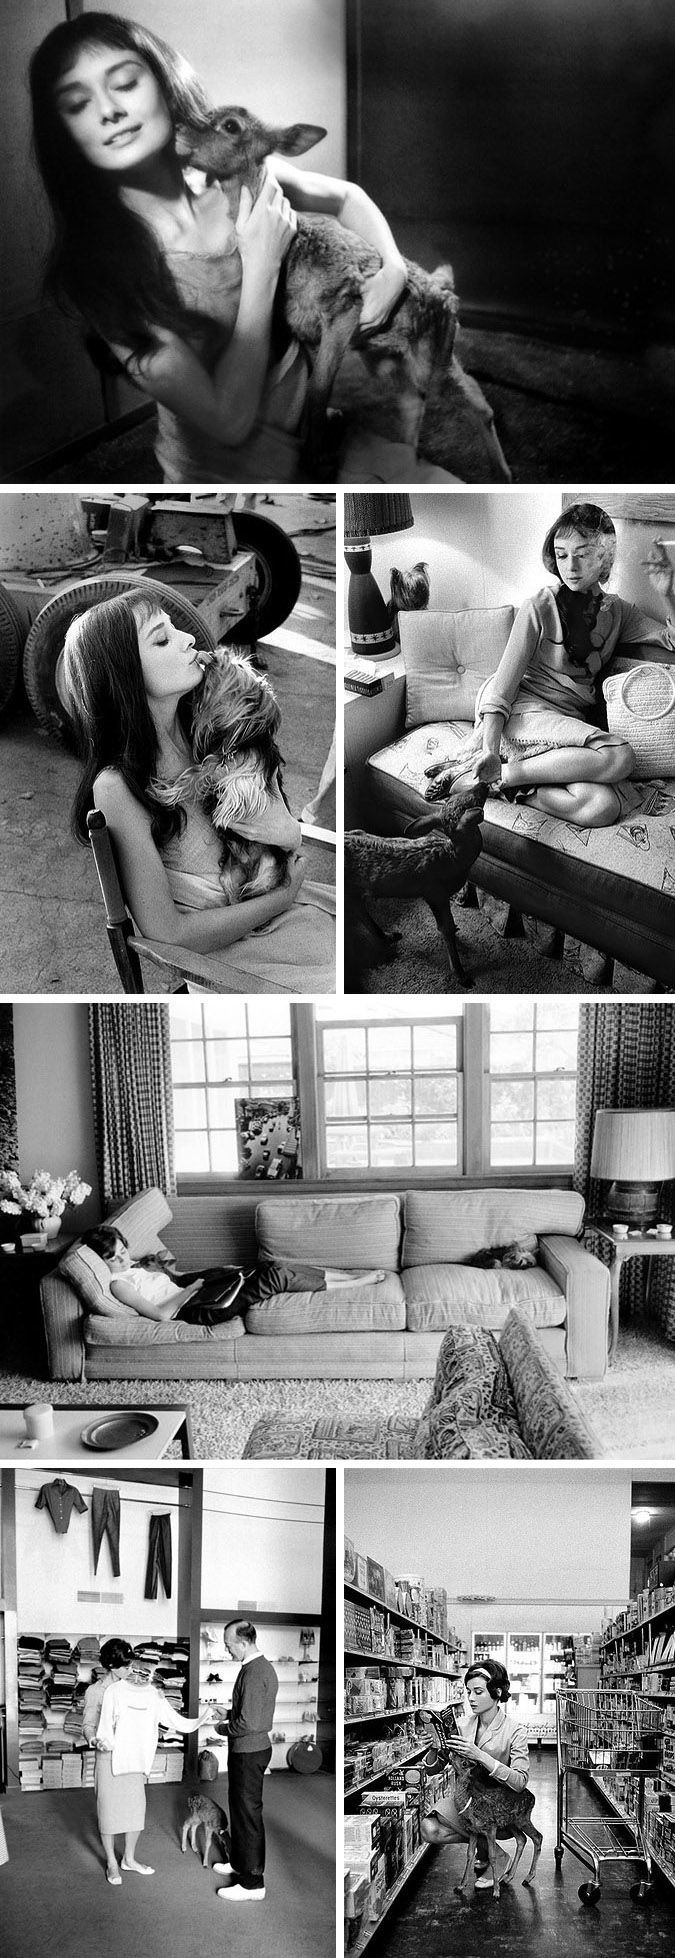 some cool shots Audrey Hepburn..with her pets ..a dog, named Mr. Famous and a Deer she called LP.  and yes that is the dear laying across her chest and the dog at her feet while she is napping on the couch!  HA!  Gotta love Audrey..